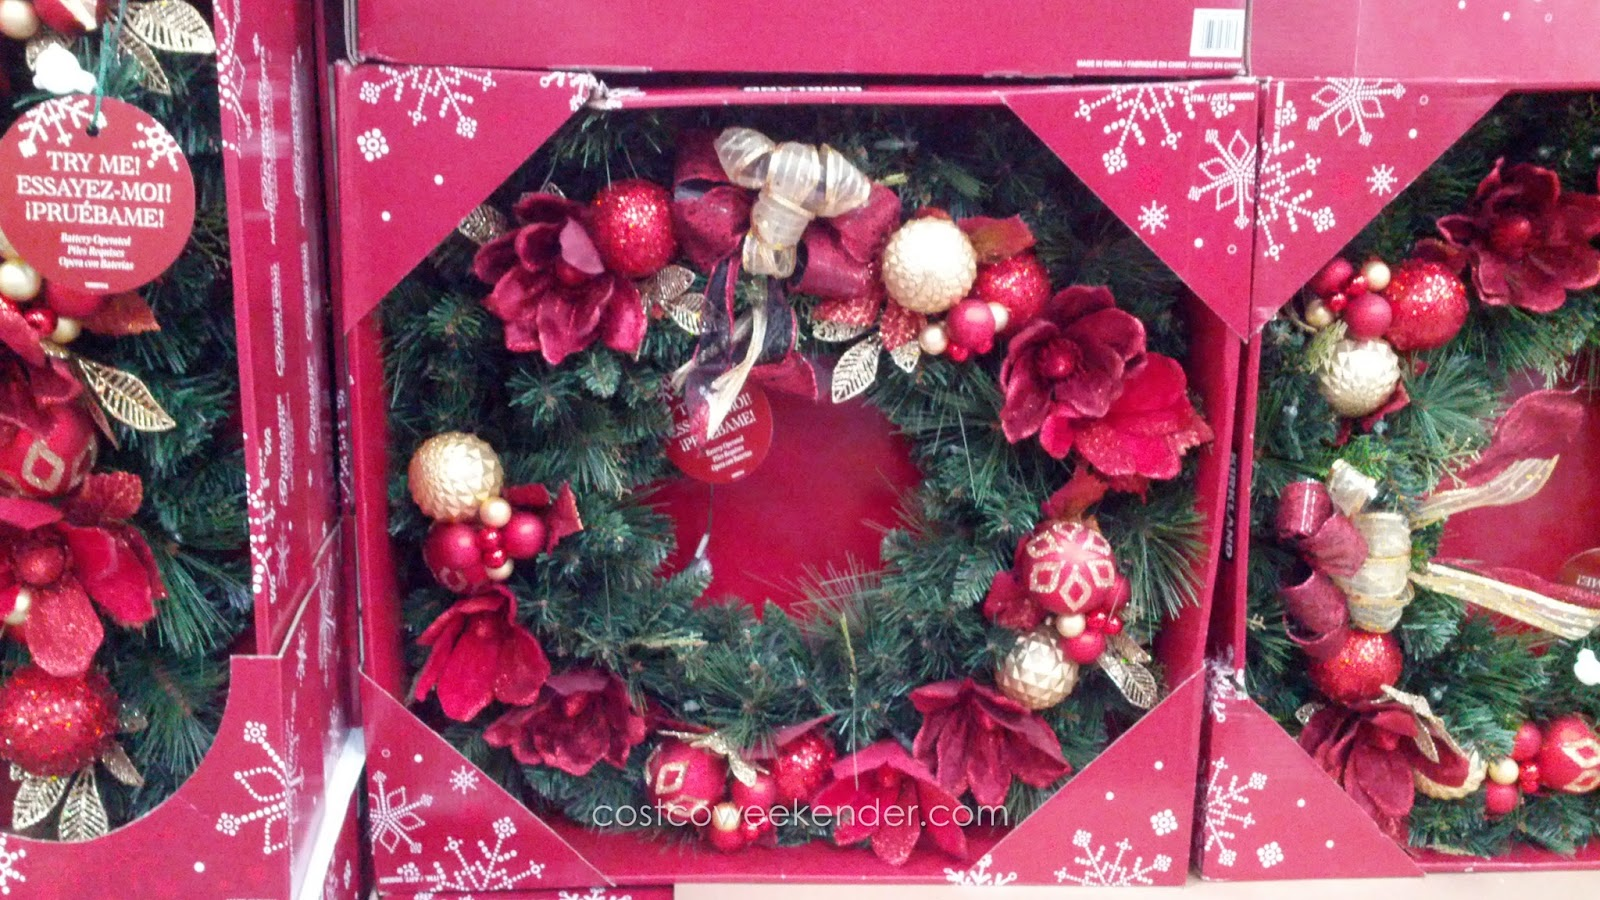 Kirkland Signature 32-inch Decorated Christmas Wreath | Costco Weekender